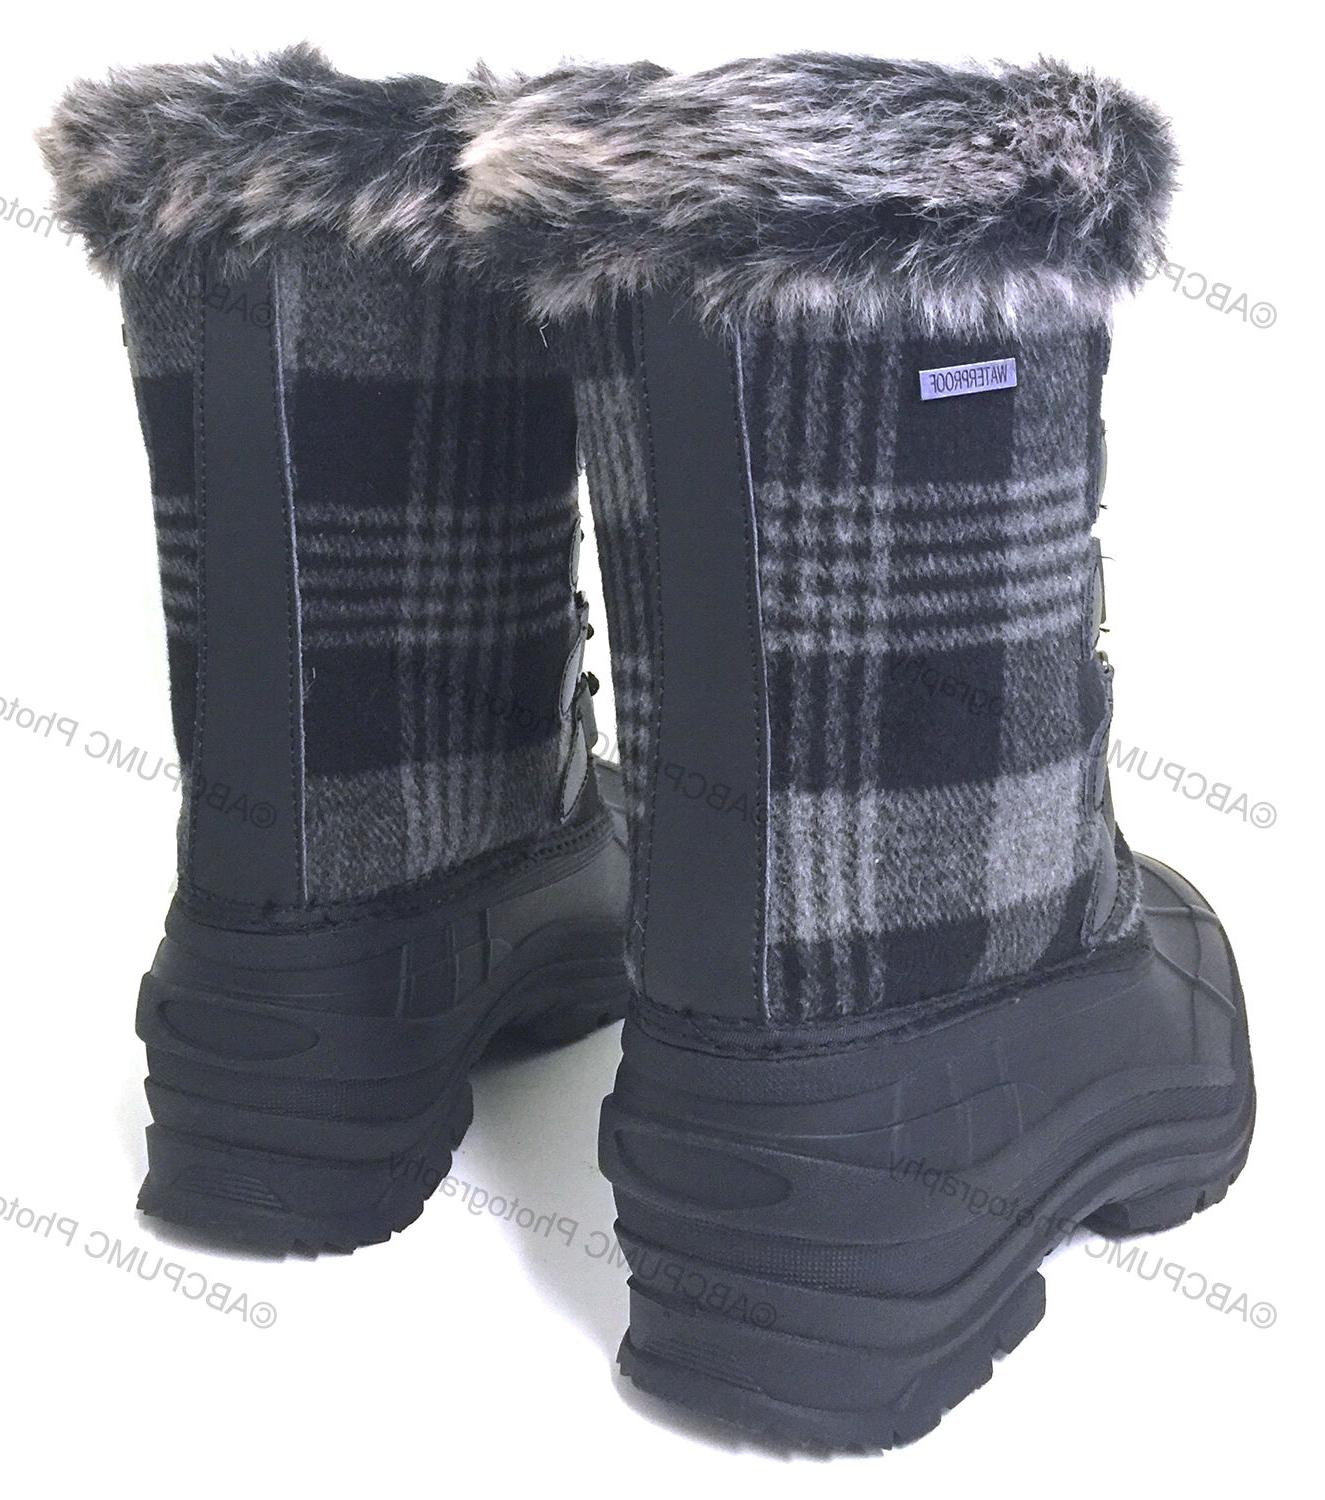 Womens Boots Plaid Insulated Fur Hiking